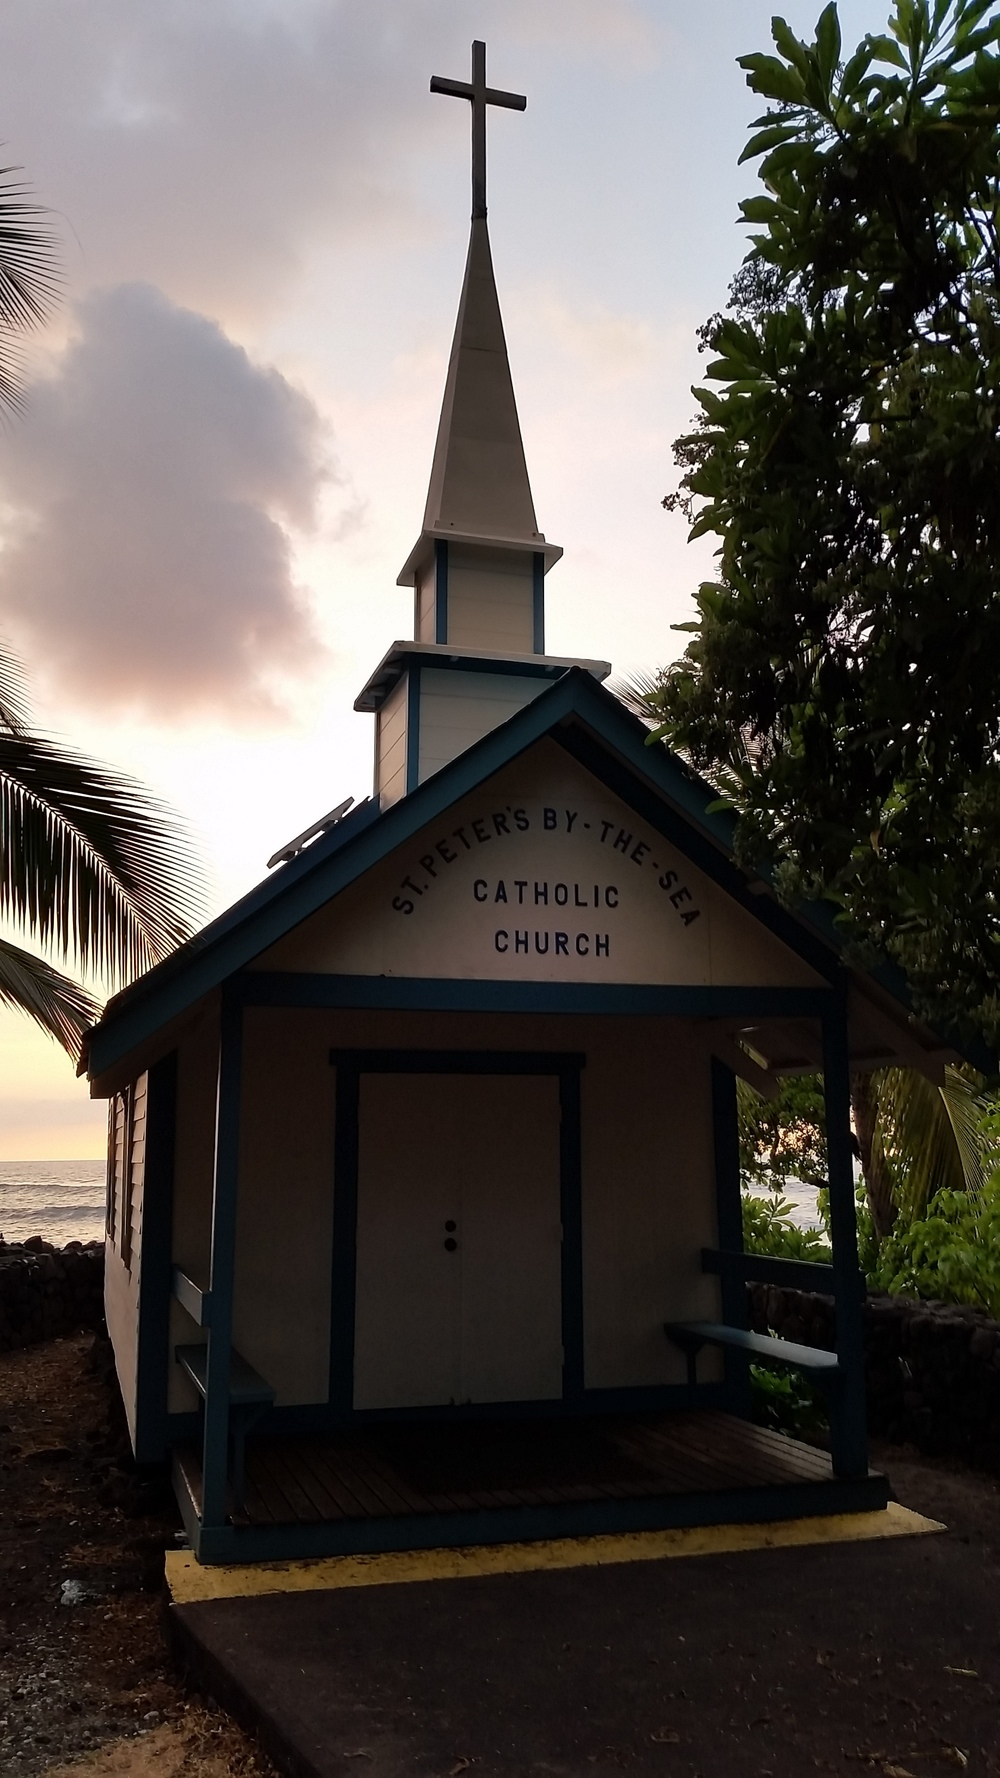 This church is situated on the one other Ali'i Drive beach near the run turnaround.